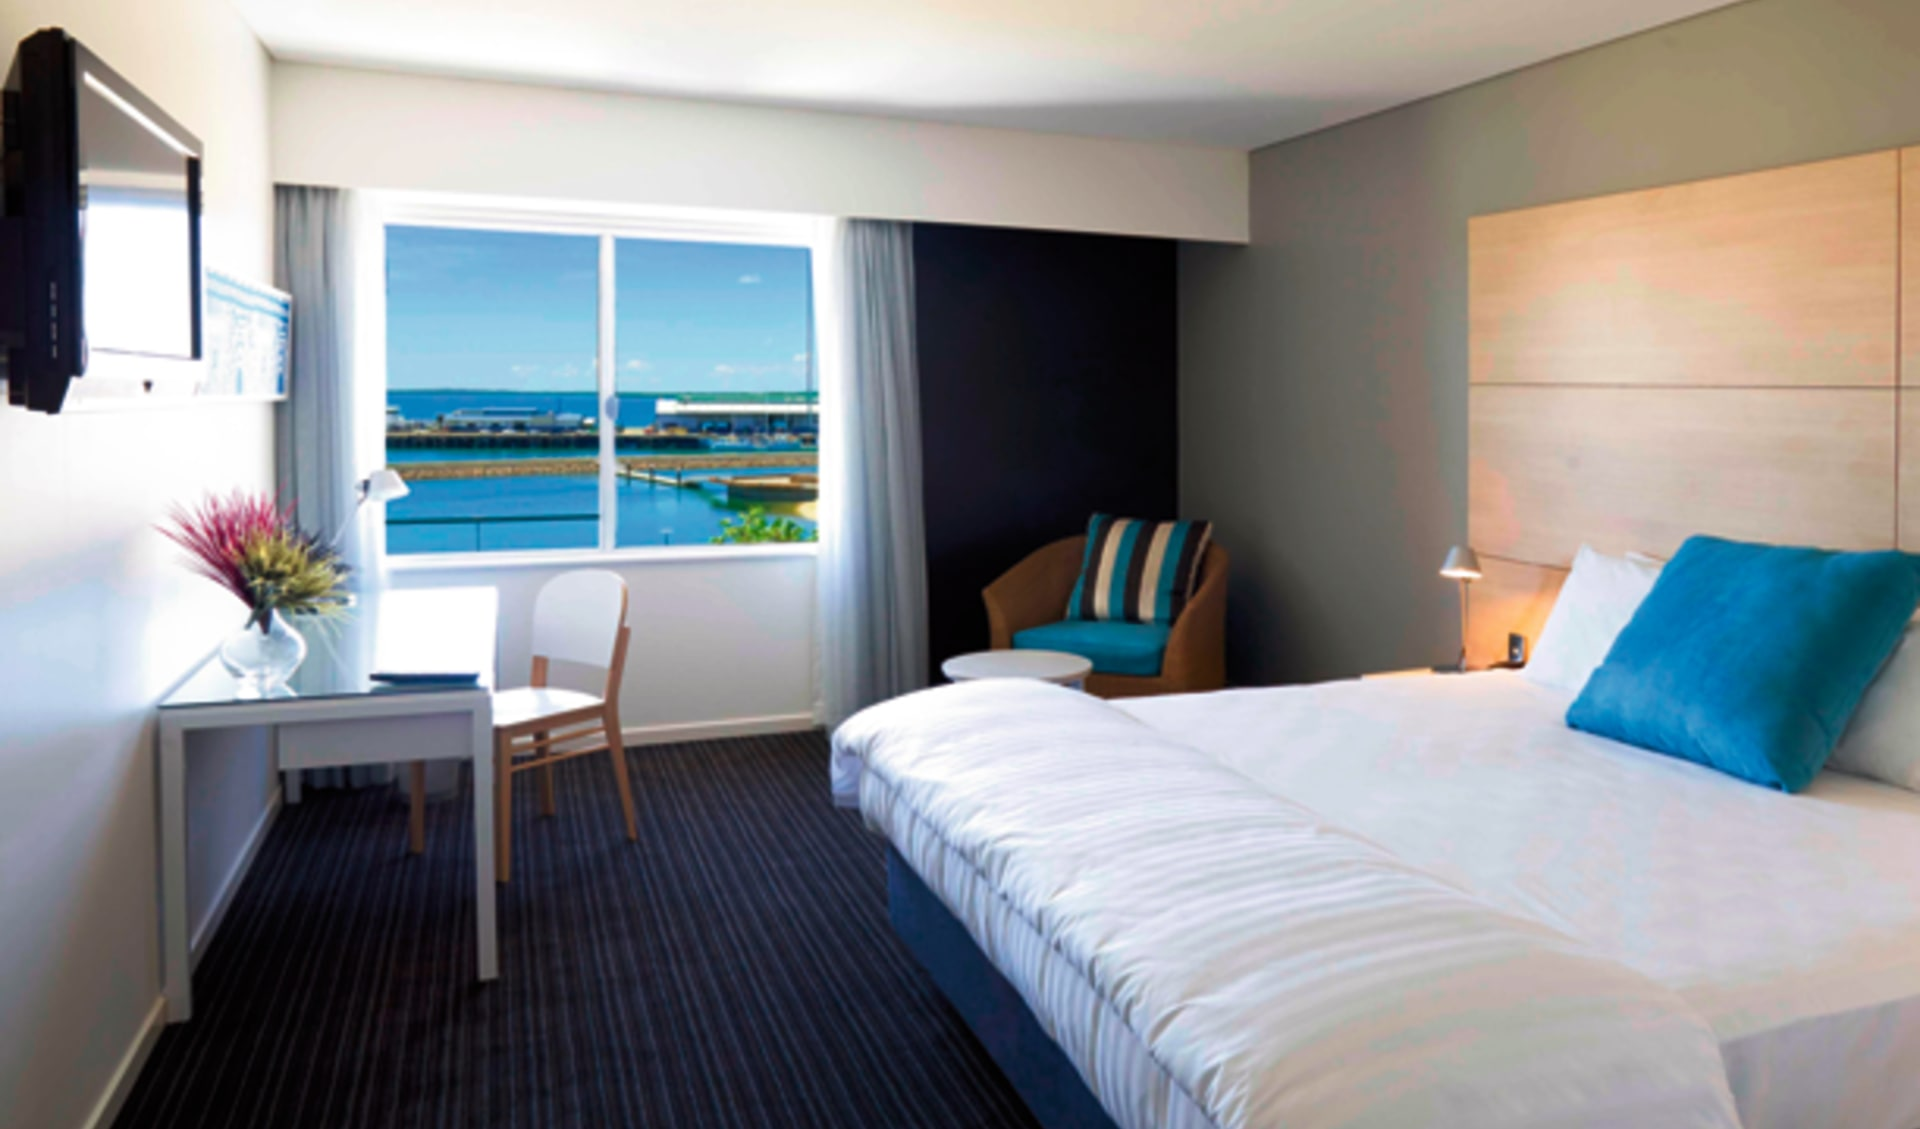 Vibe Hotel Darwin Waterfront:  Vibe Hotel Darwin Waterfront - Deluxe View Room